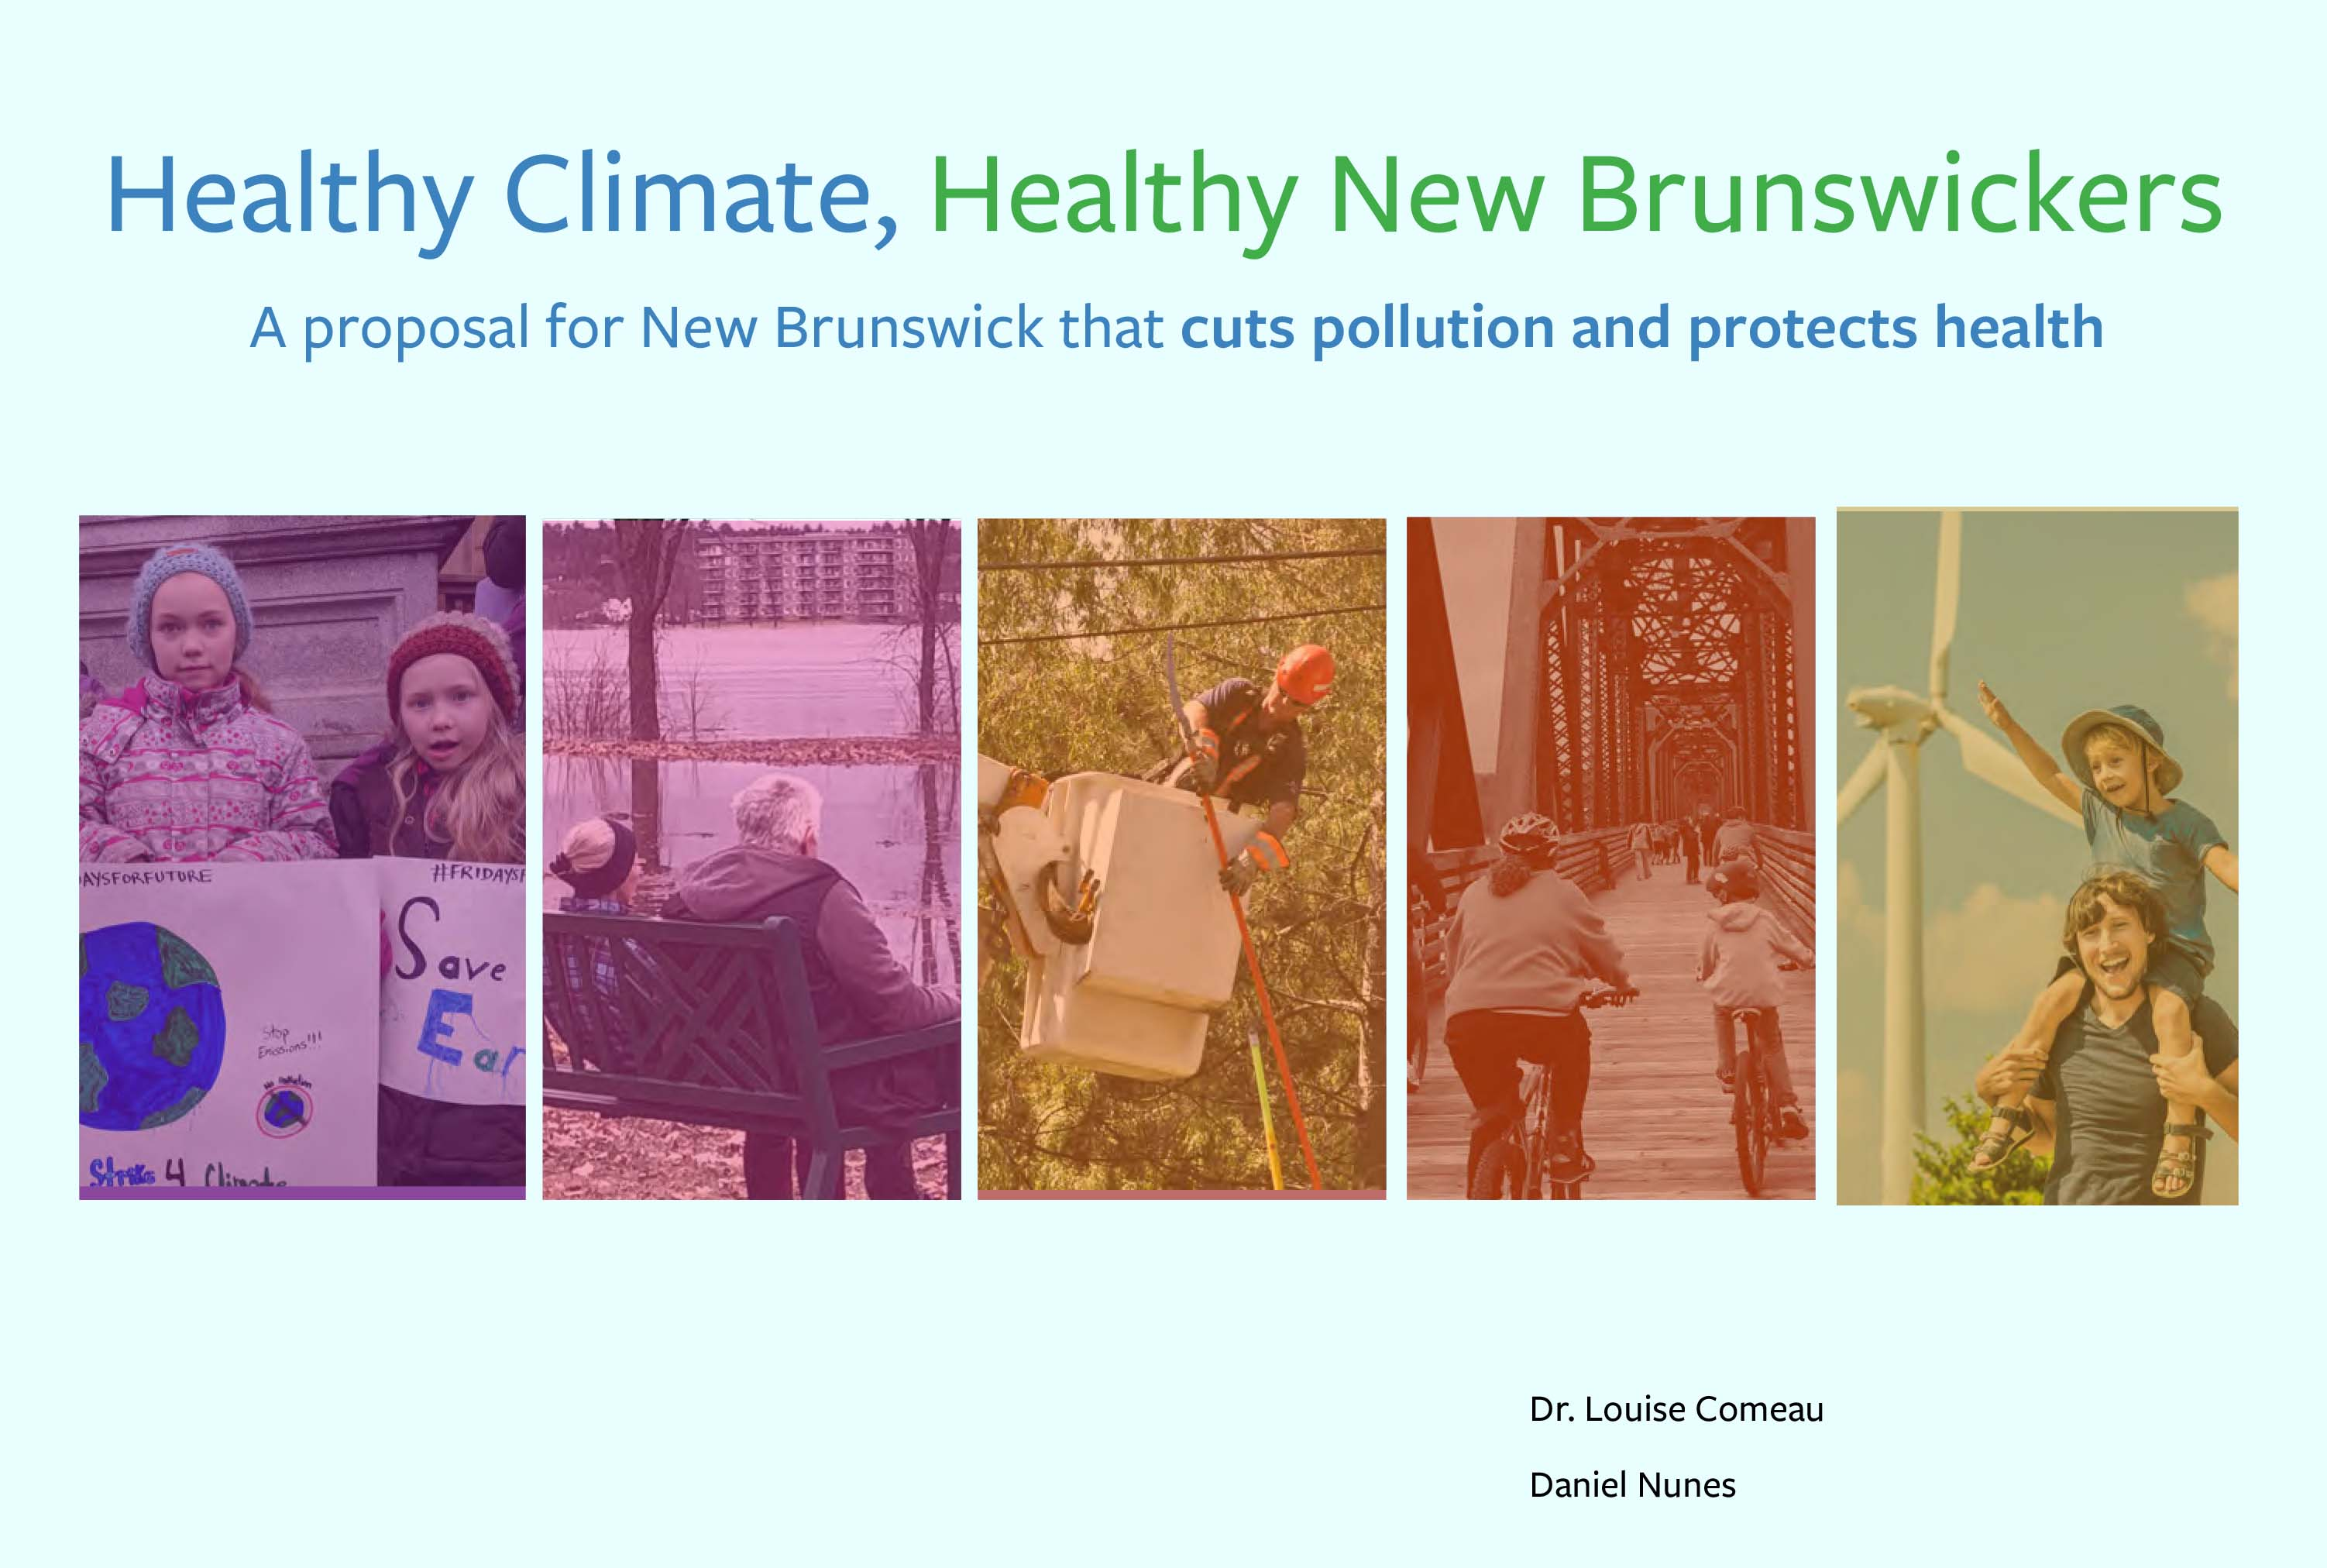 Healthy Climate Healthy New Brunswickers 1 1